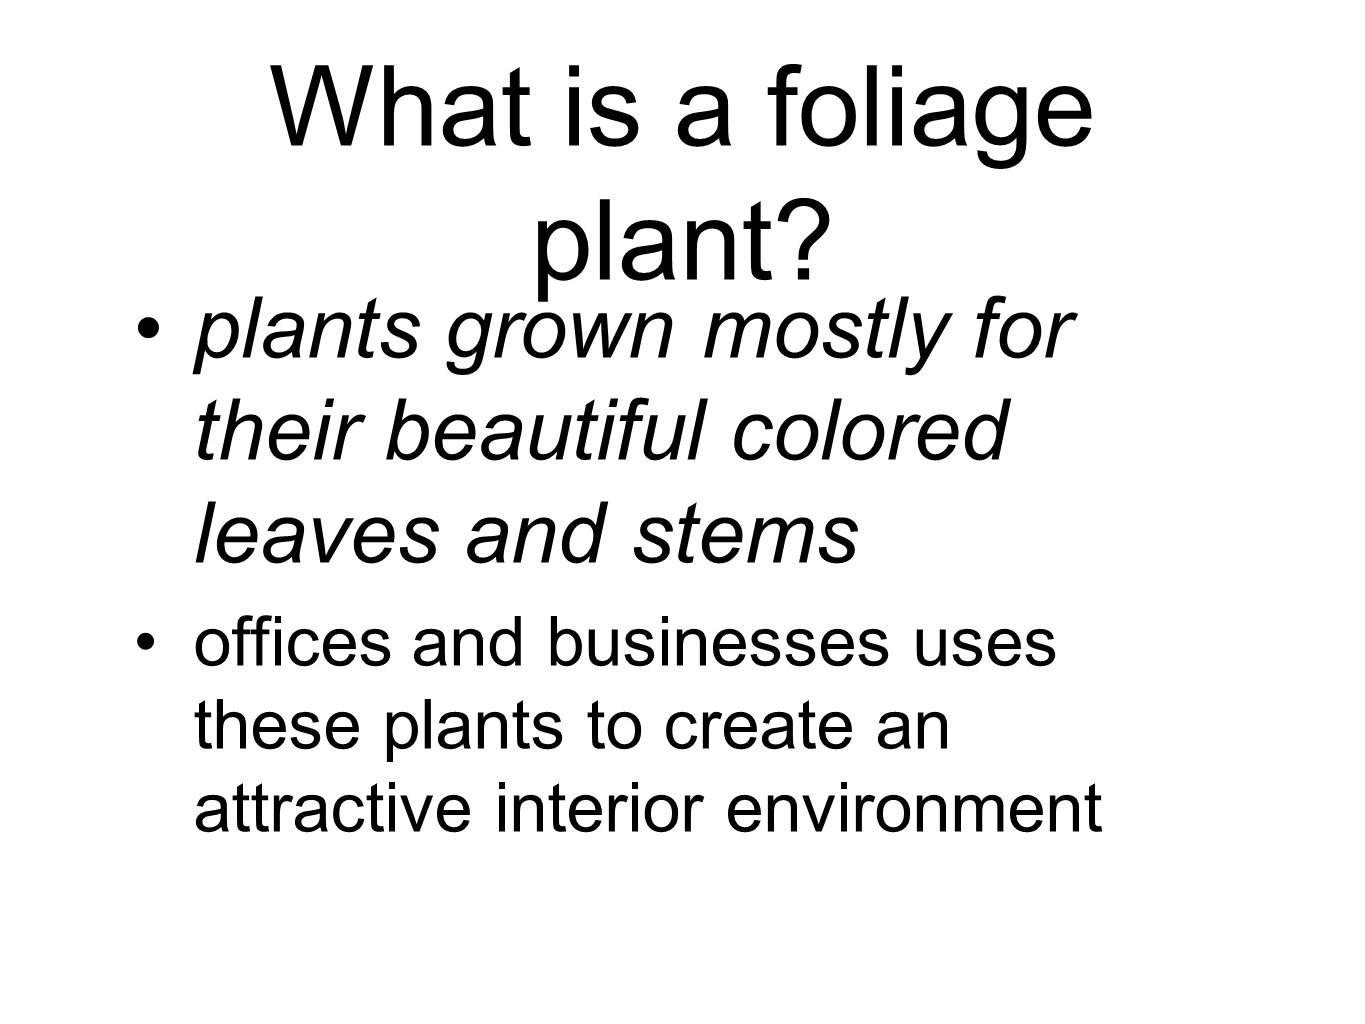 What is a foliage plant plants grown mostly for their beautiful colored leaves and stems.